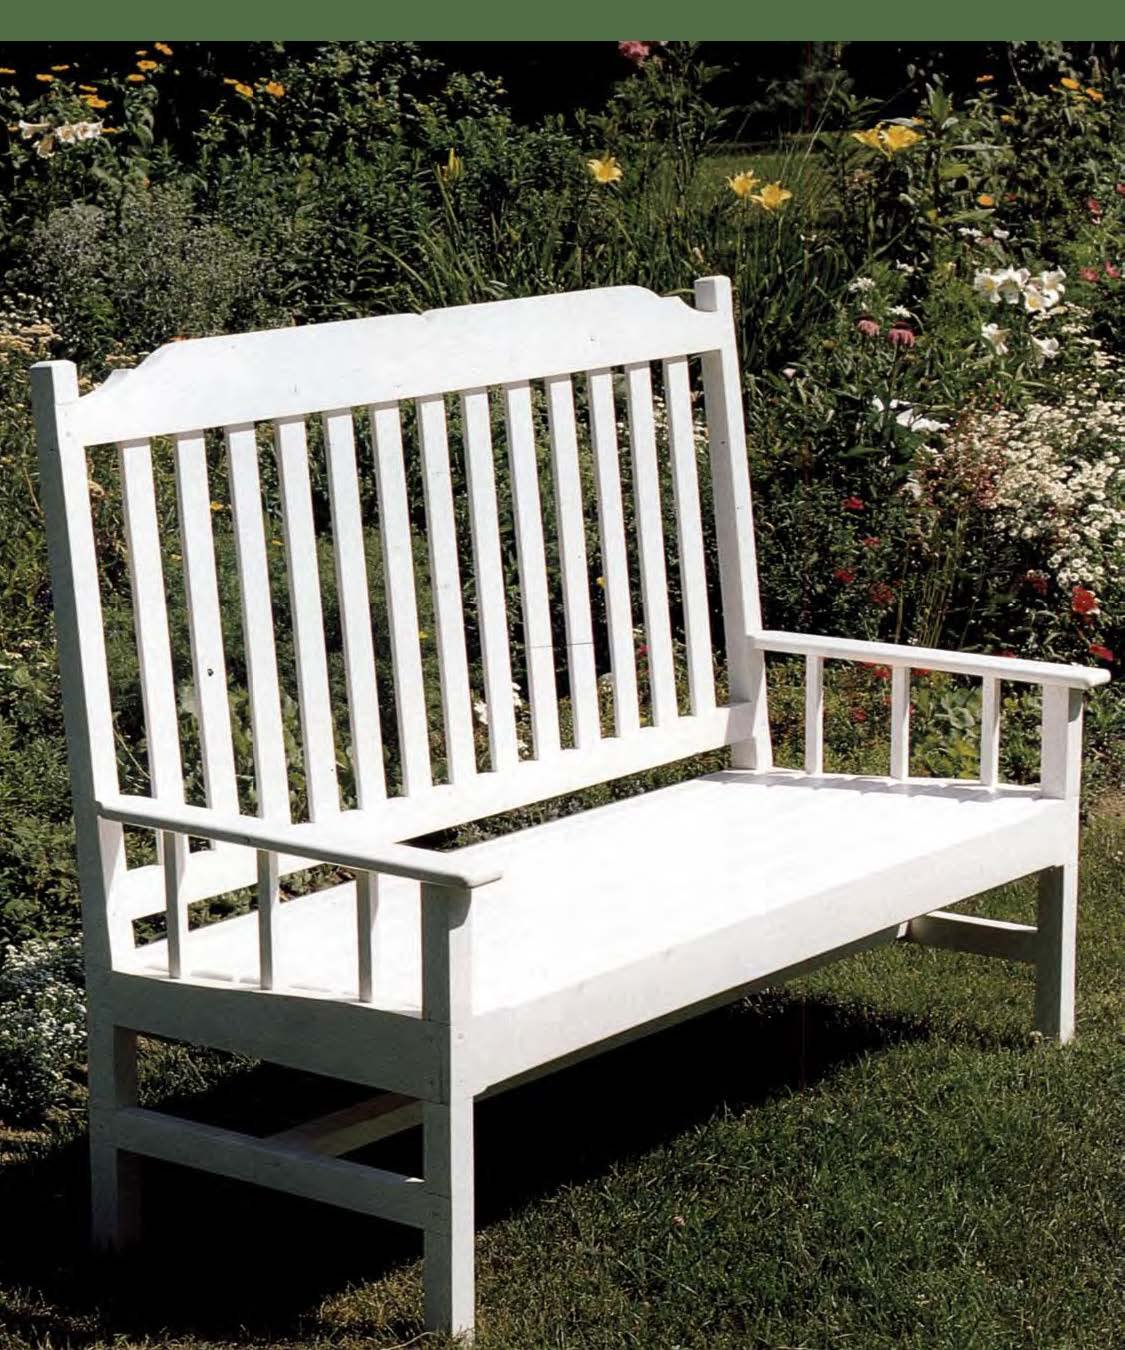 Outdoor furniture built to last 14 timeless woodworking projects for the yard deck and patio skills institute press 9781565235007 amazon com books